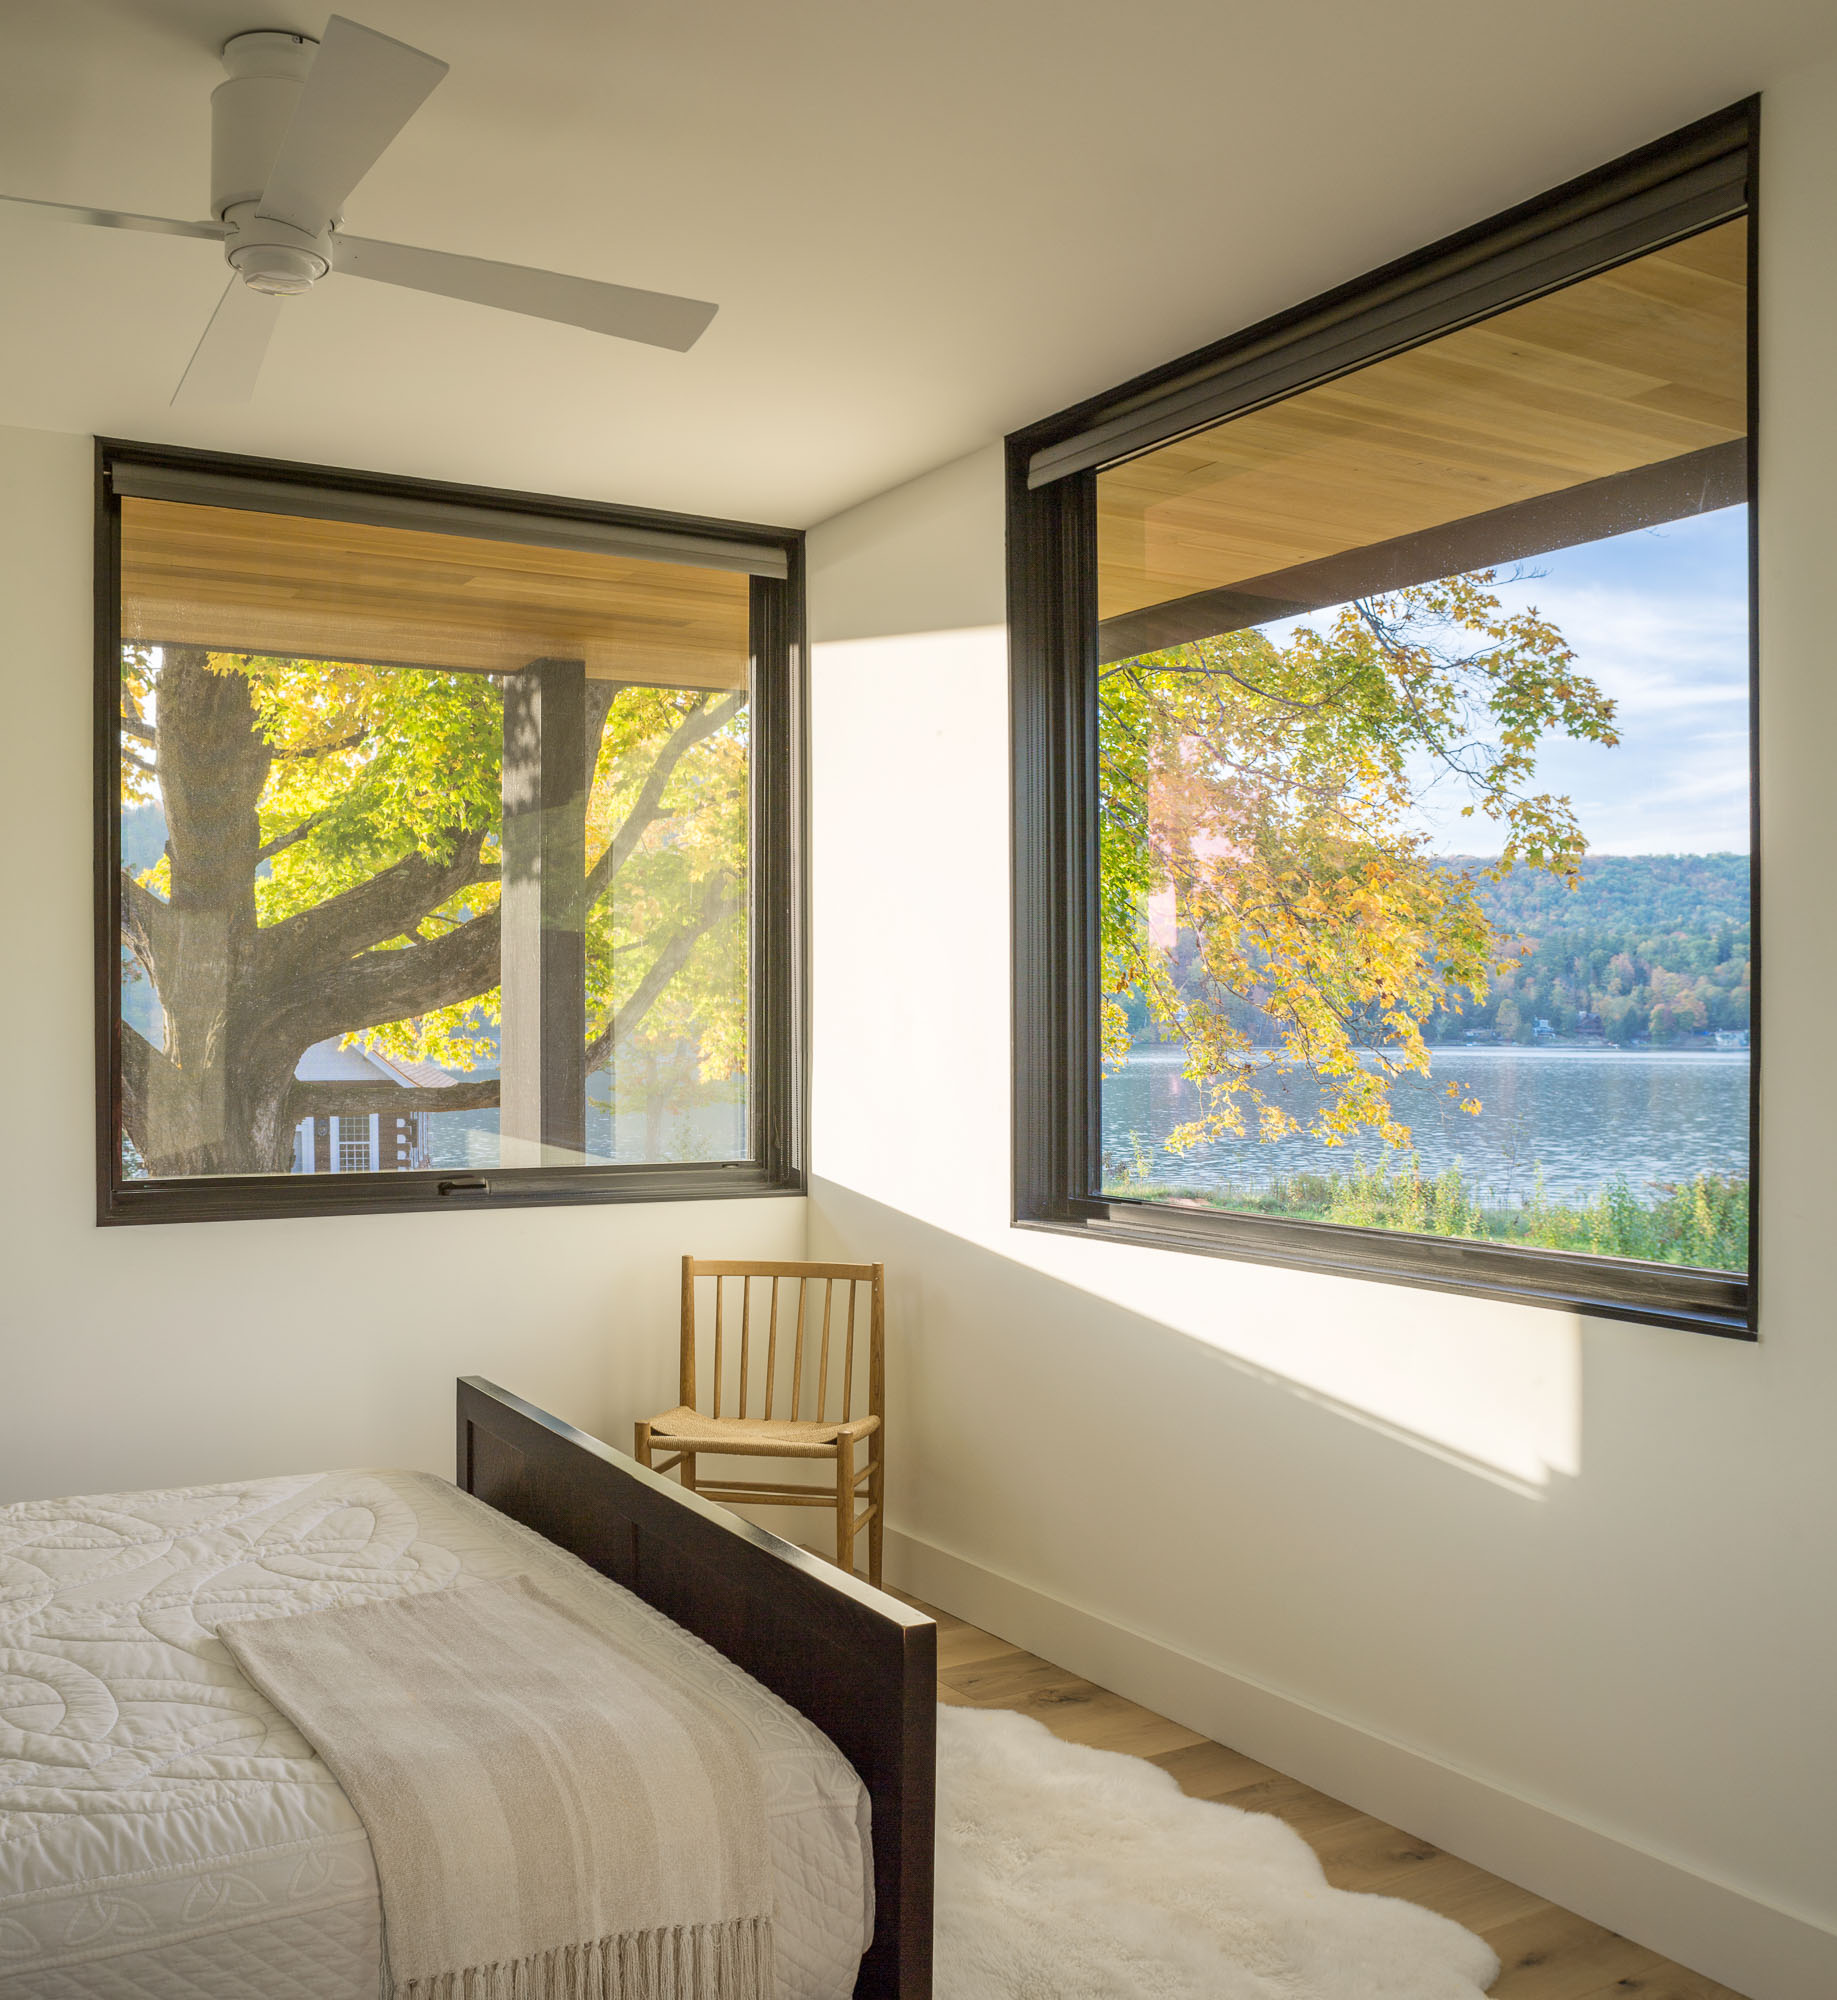 In this modern bedroom, black framed windows on two walls look out to the lake and trees.